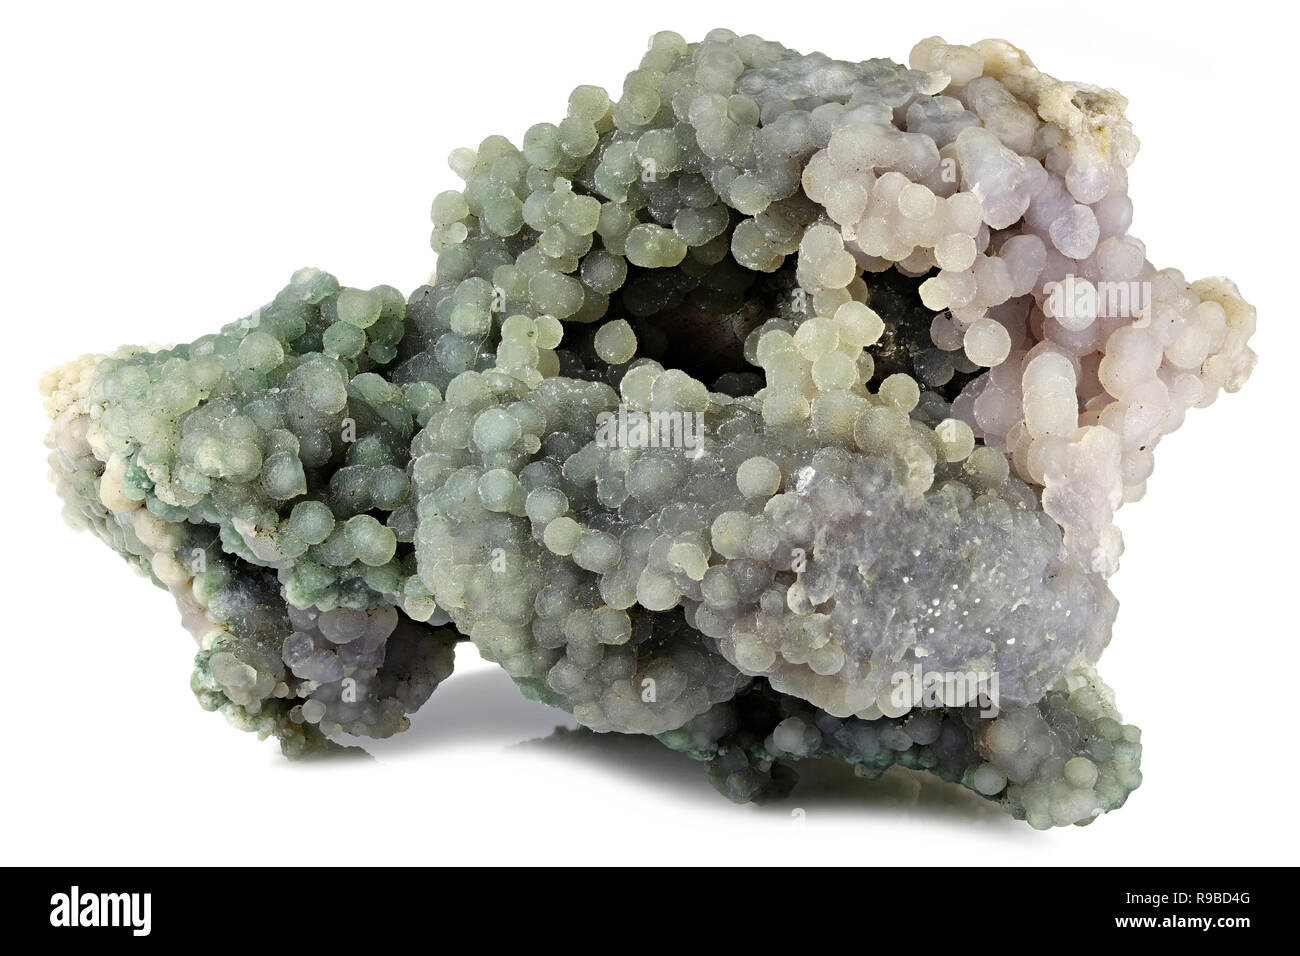 chalcedony (botryoidal grape agate) from Mamuju, Indonesia isolated on white background - Stock Image